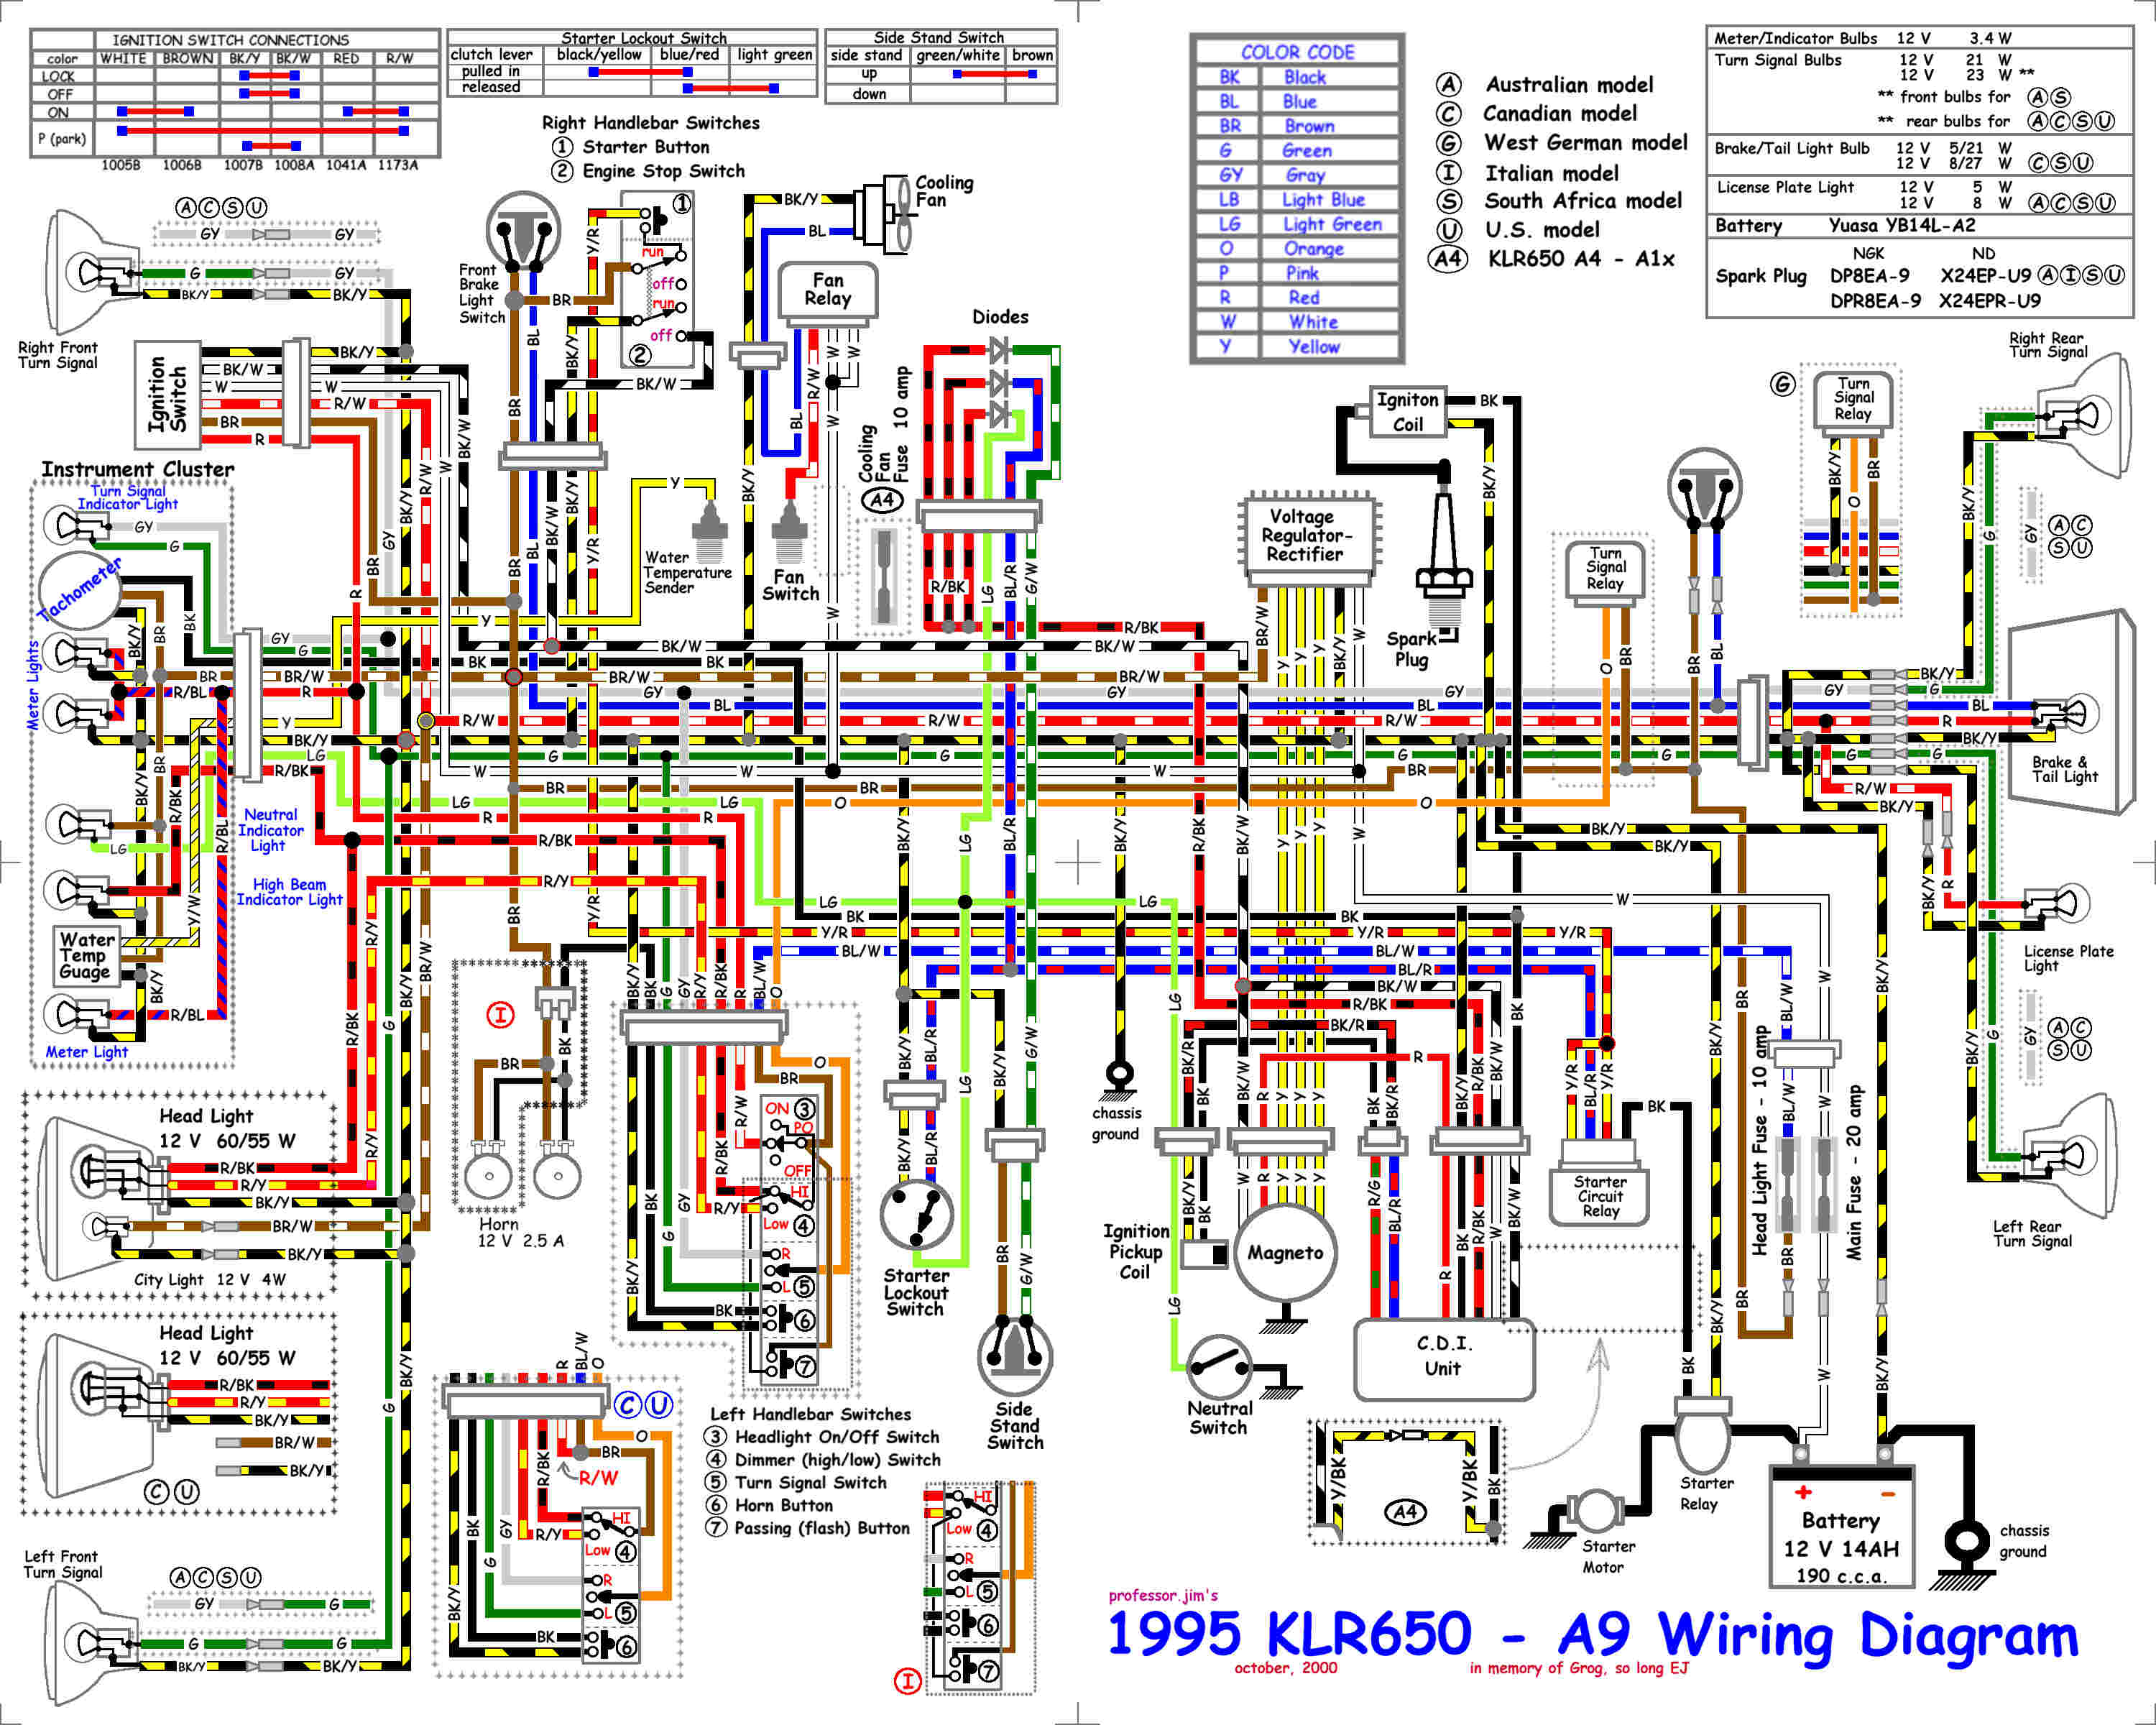 2_1289382308 Bose Wiring Diagram Color Code on car stereo, yamaha marine outboard, toyota ad6803 stereo, gm trailer, air conditioner,